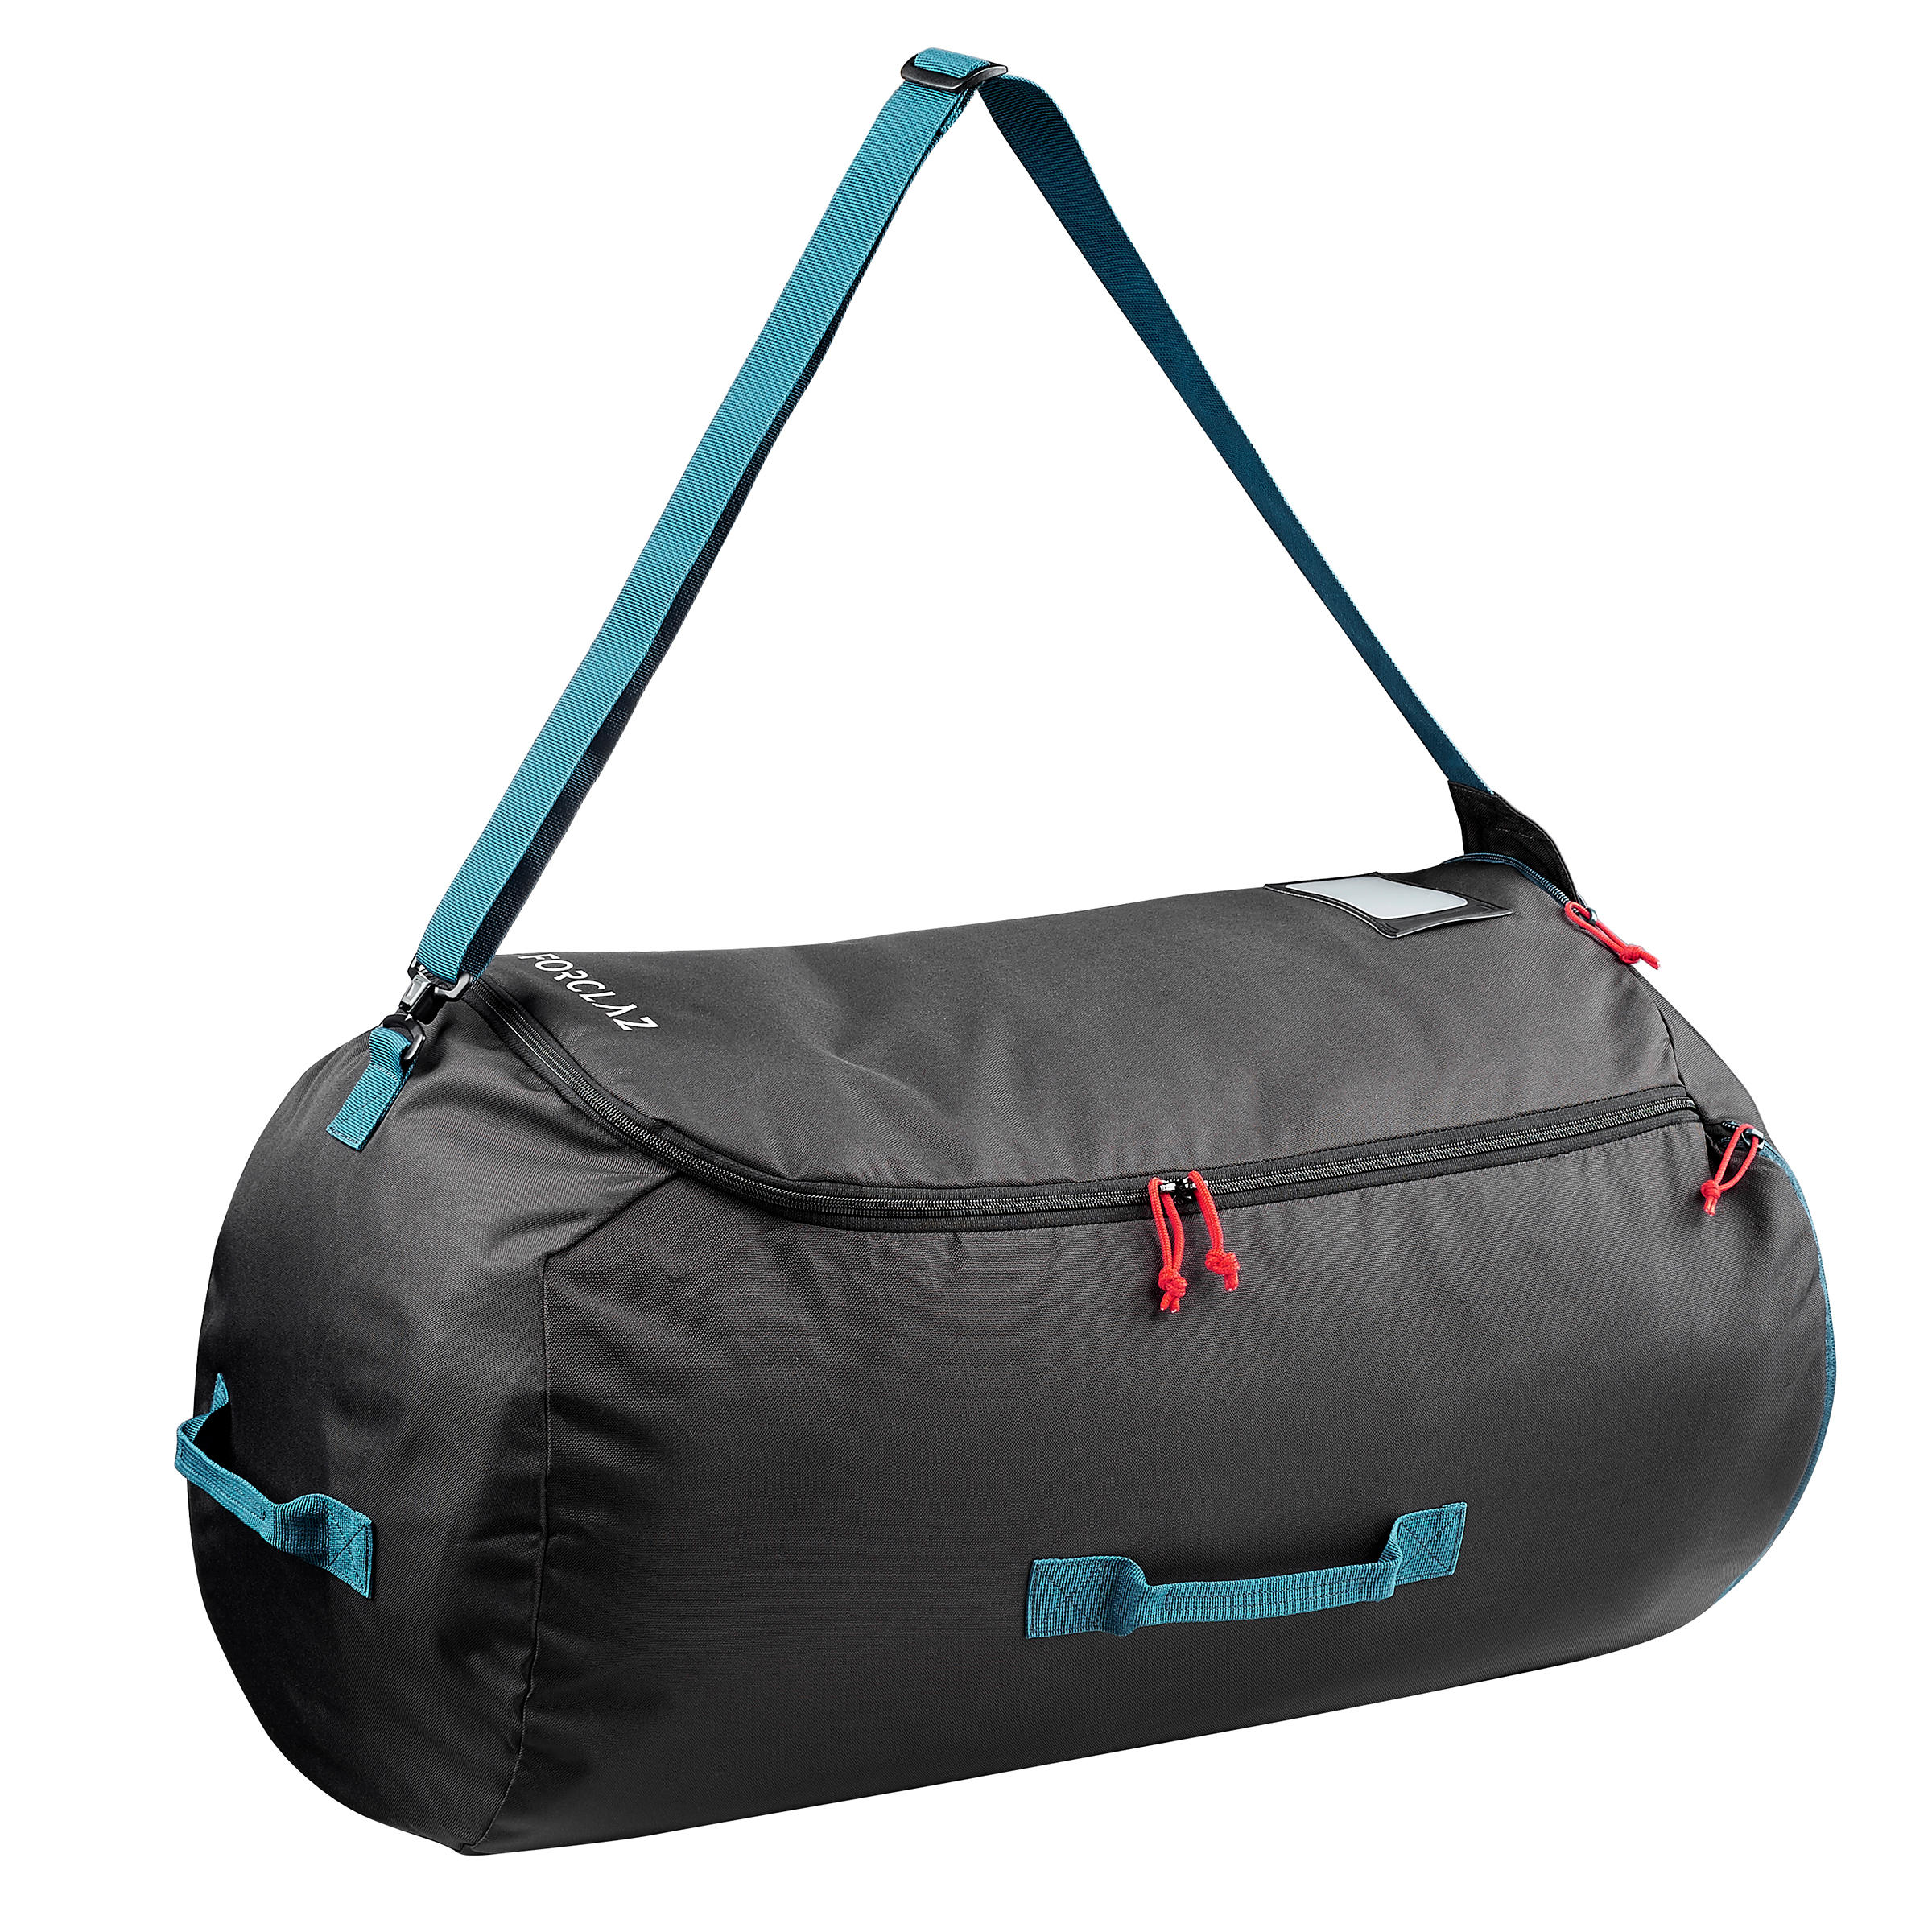 Travel Airplane and Protective Transport Cover for 40 to 90 Litre Backpacks